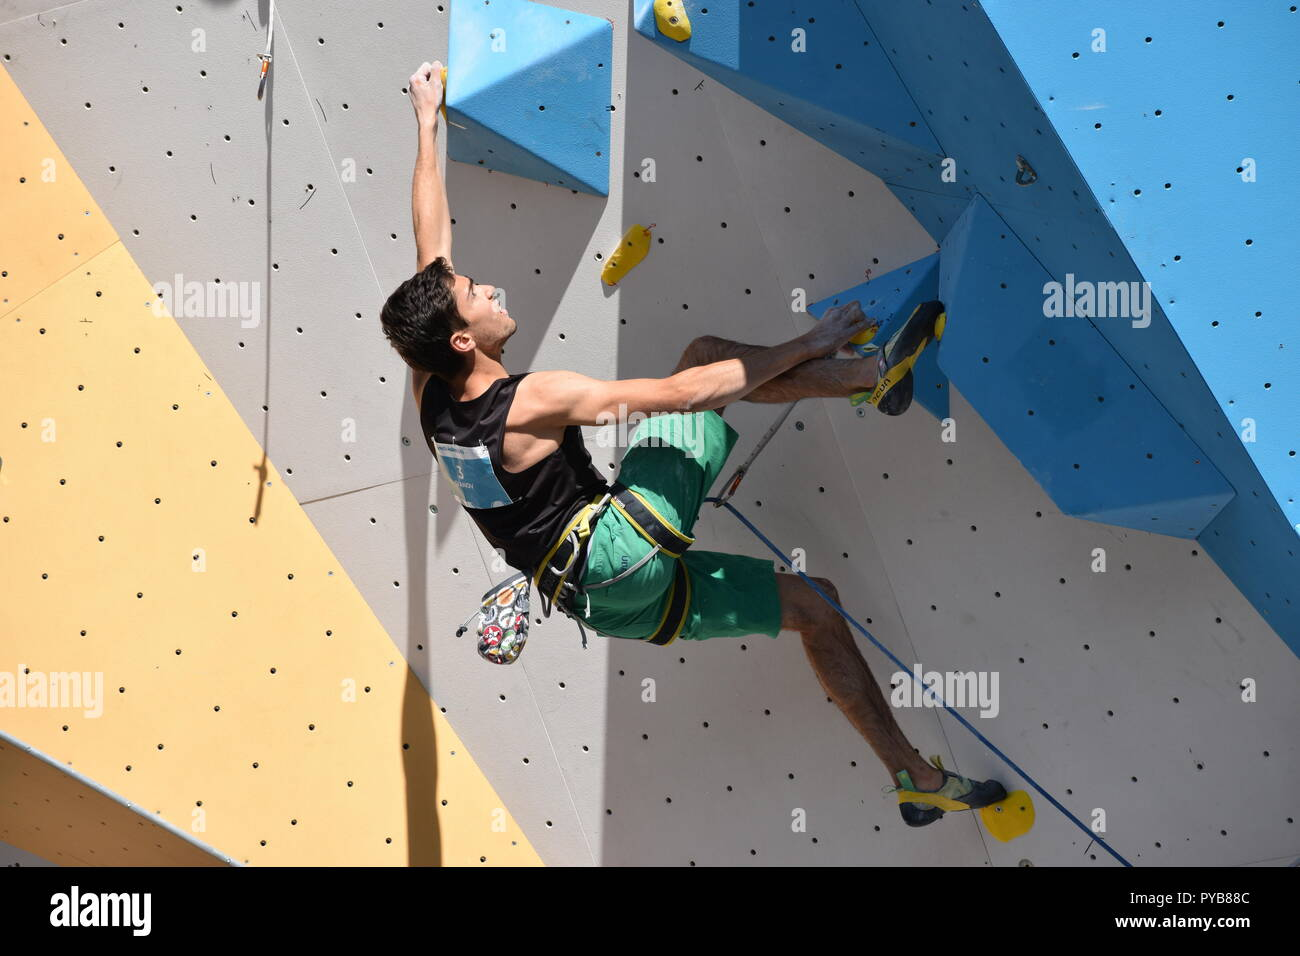 Bulgarian climber Petar Ivanov at Buenos Aires 2018 Youth Olympic Games sport climbing contest climbing up the lead wall - Stock Image